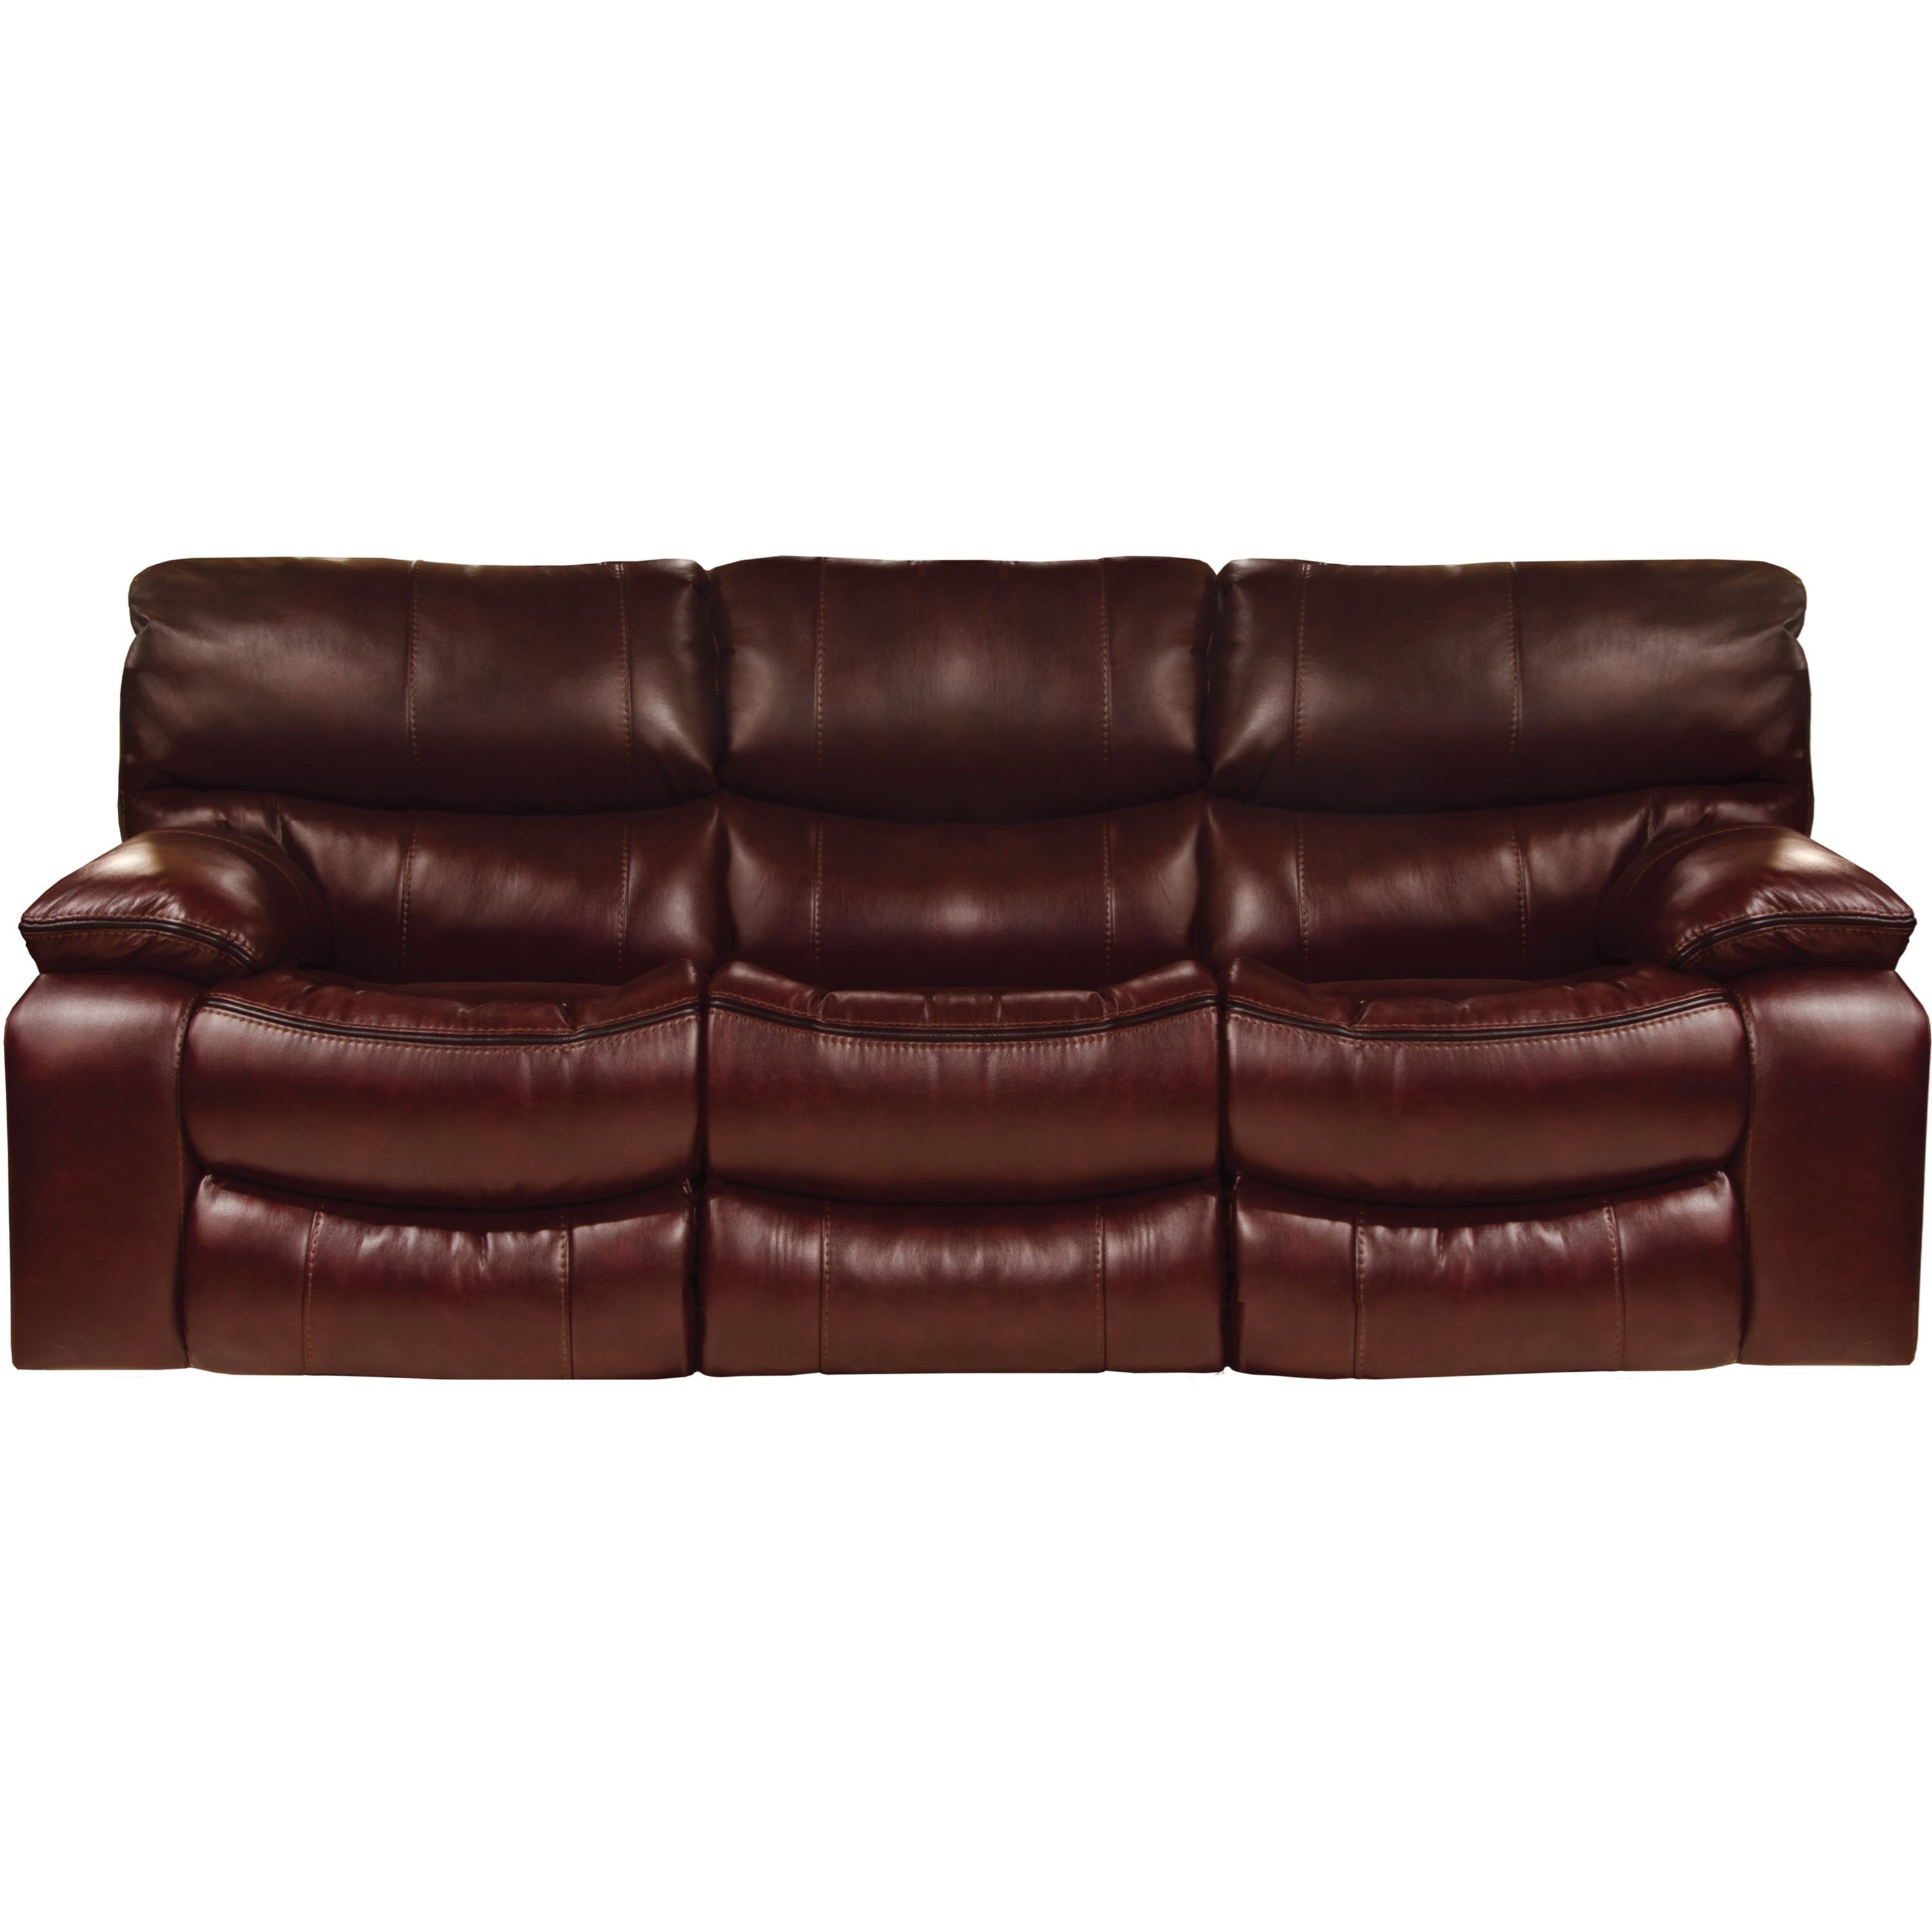 Catnapper Camden Lay Flat Reclining Sofa With Welt Stitching Zaks